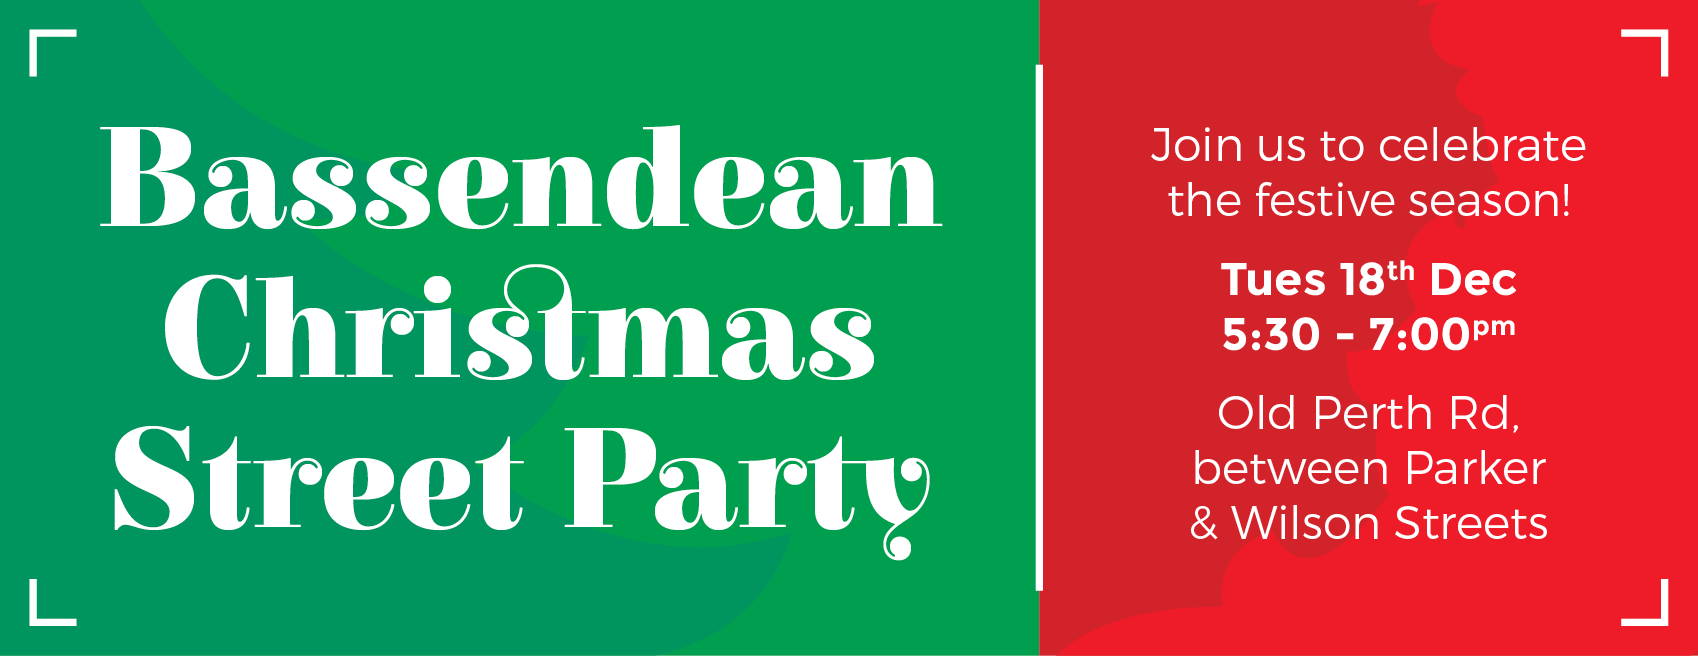 Bassendean Christmas Street Party